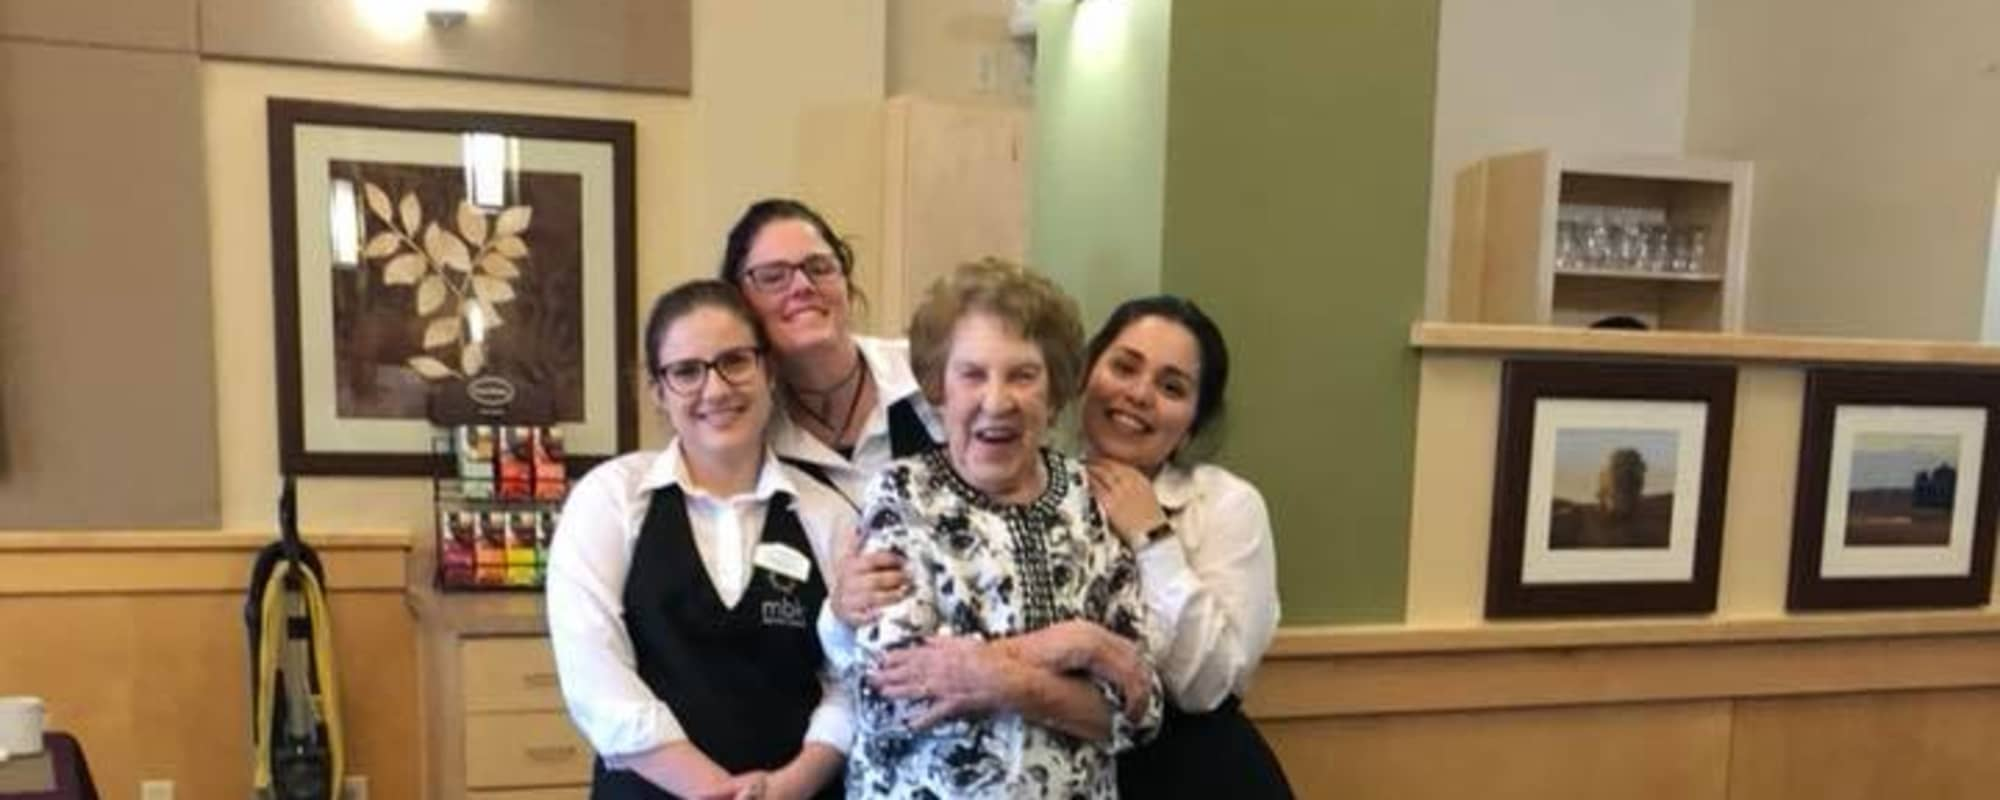 Waitstaff hugging happy senior at Mountlake Terrace Plaza in Mountlake Terrace, Washington